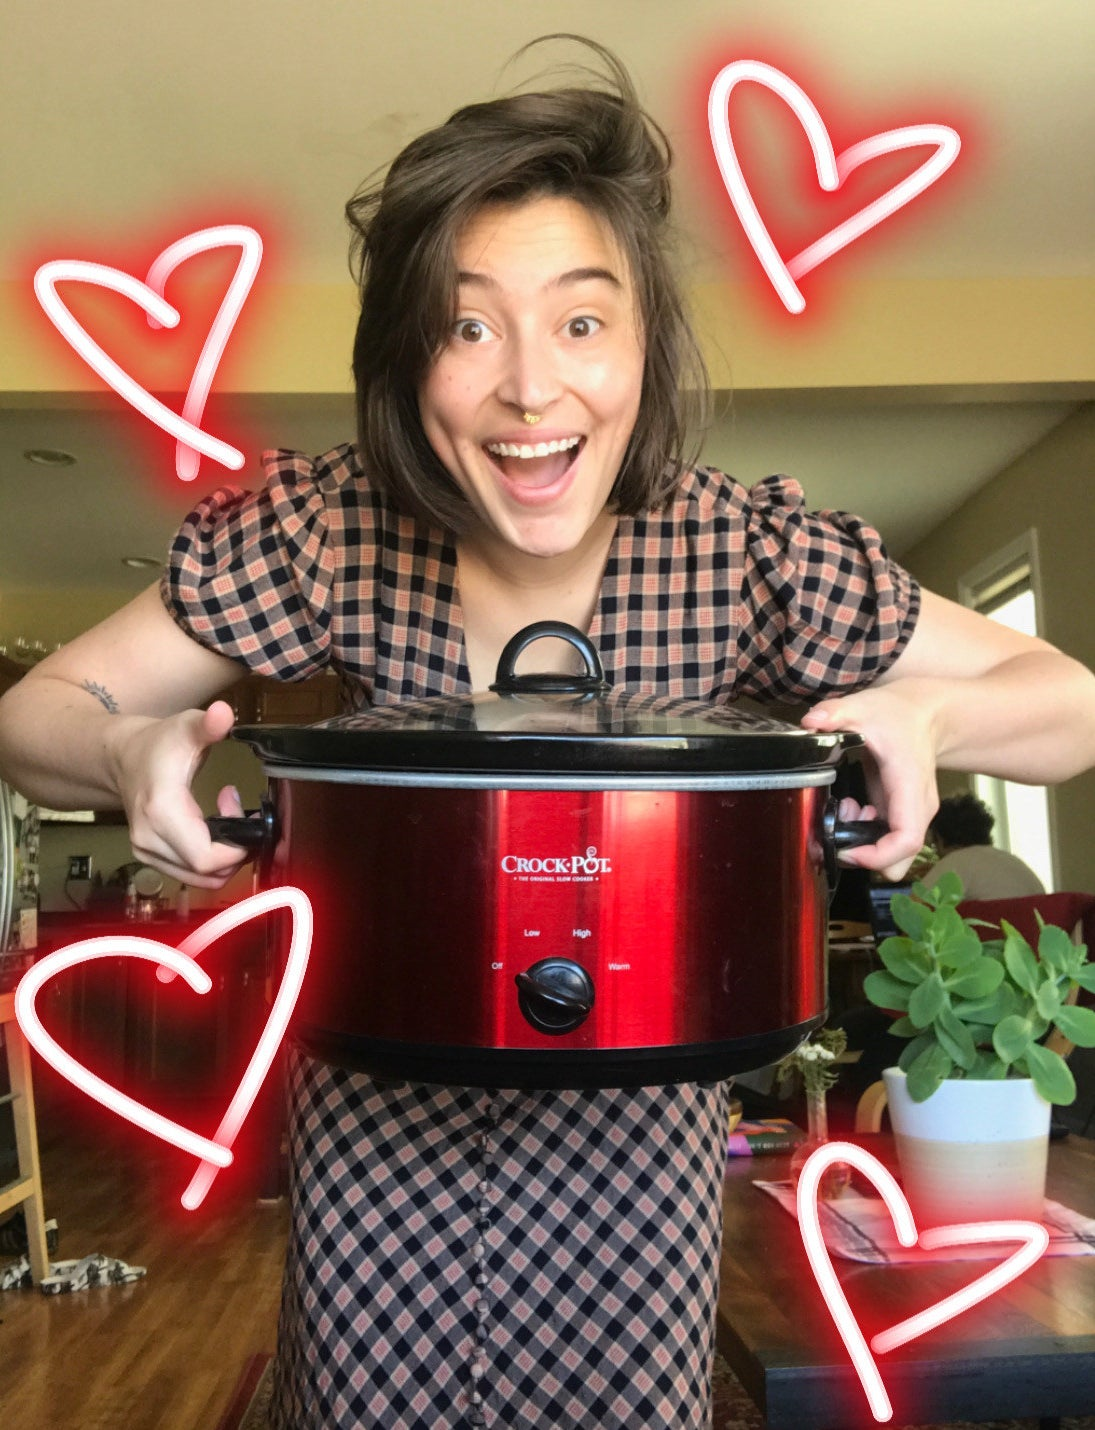 writer holding red crock-pot with hearts drawn around it